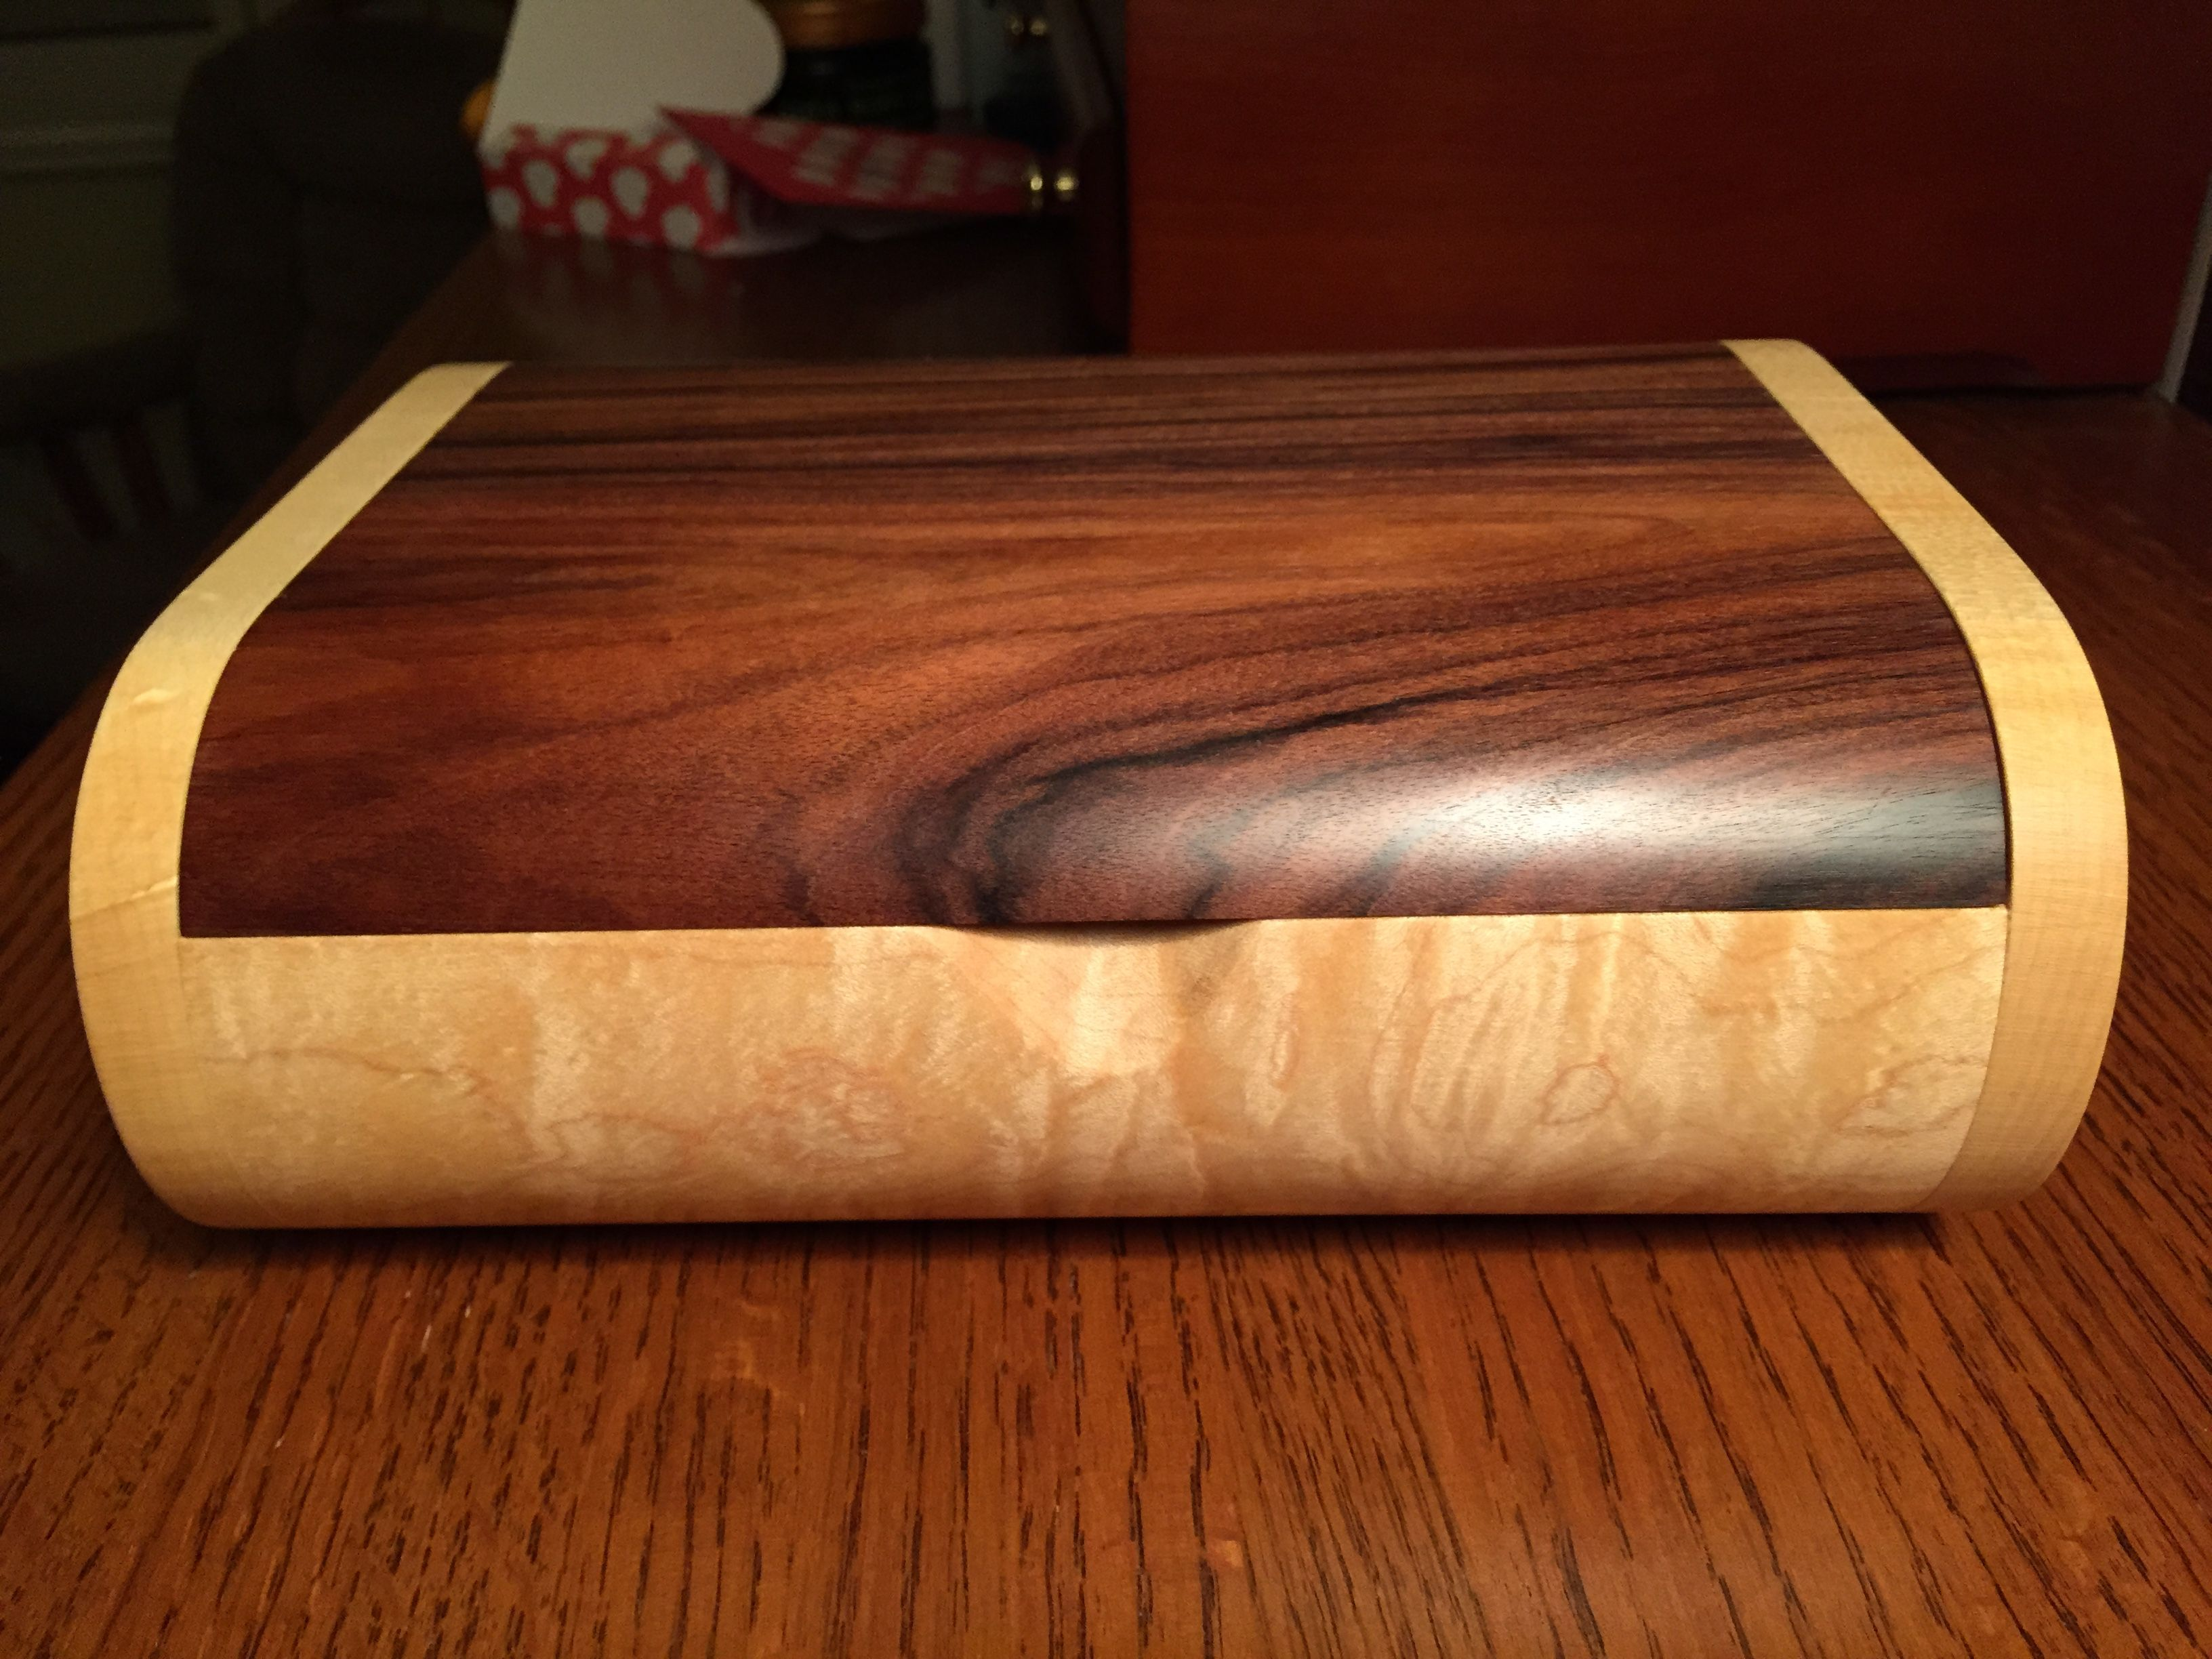 17 Awe Inspiring Wood Working Projects Logs Ideas In 2020 Woodworking Woodworking Projects Woodworking Basics